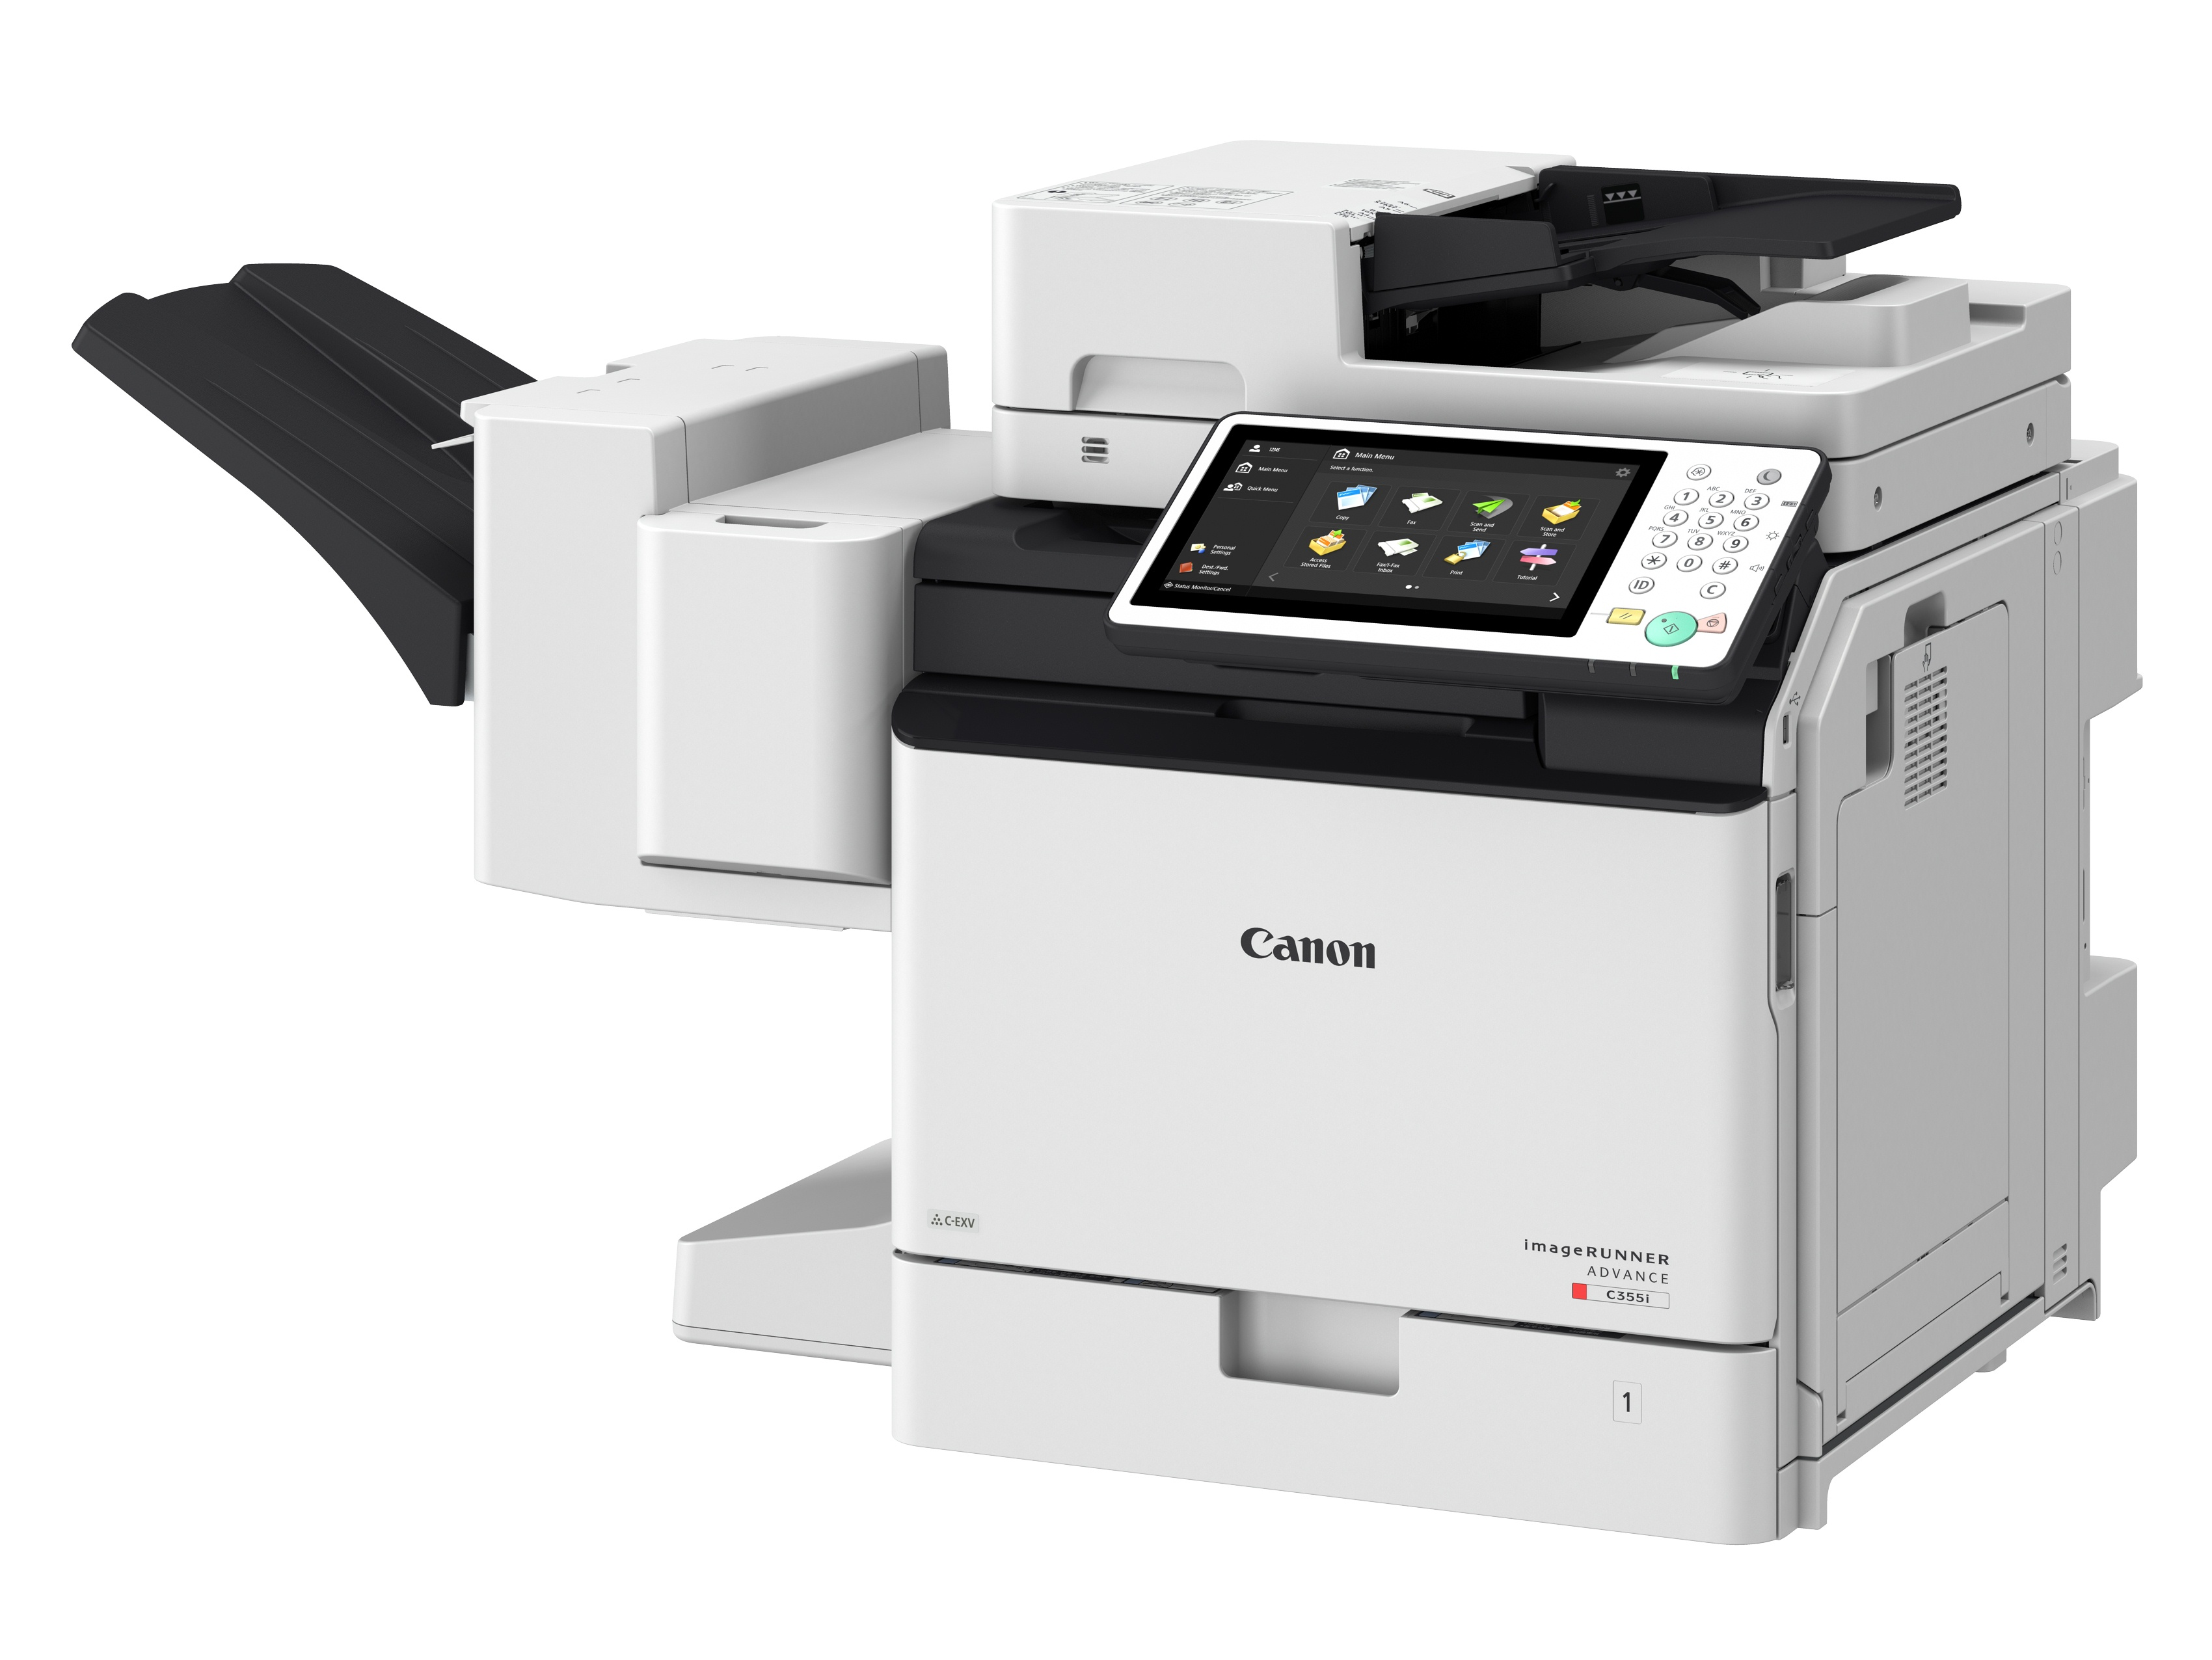 IMPRESORA CANON IMAGERUNNER ADVANCE COLOR 255I 355I